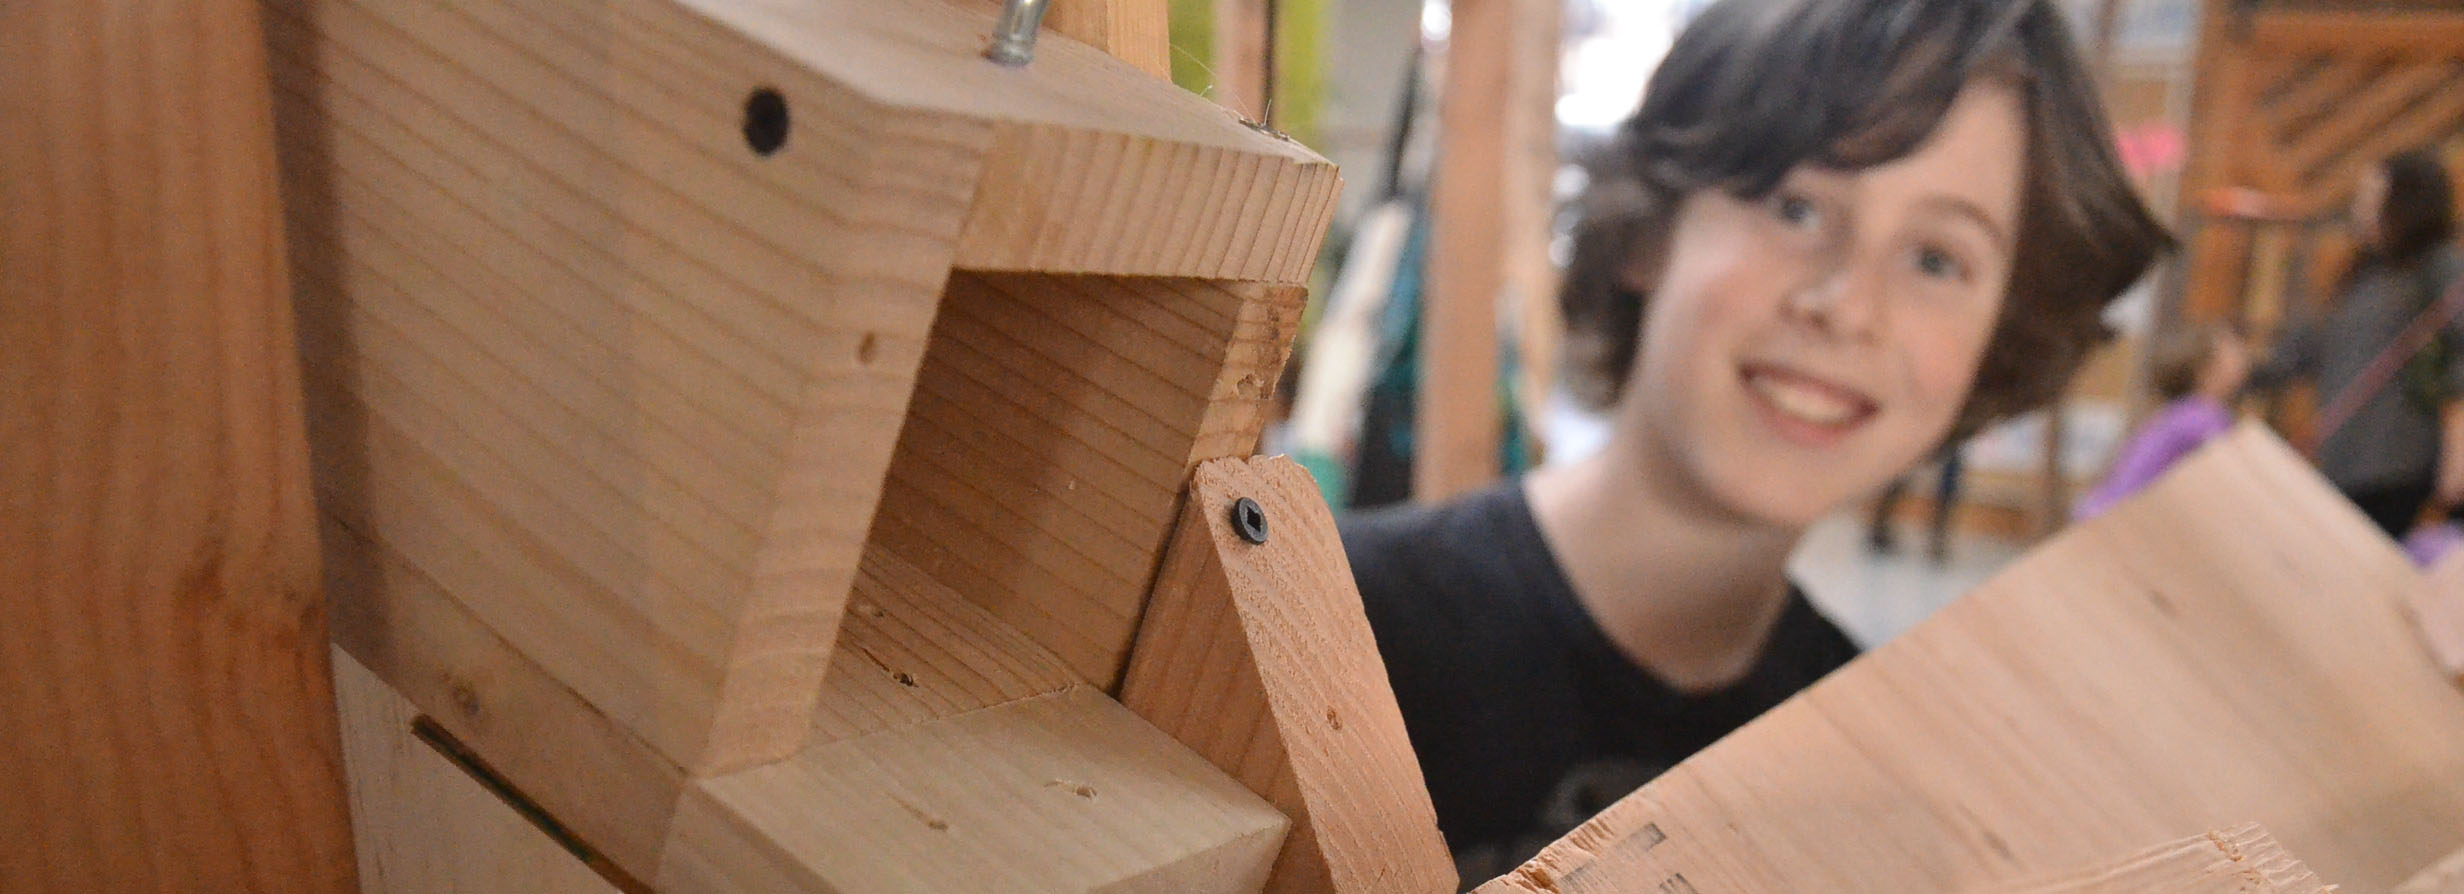 One stage in a massive Rube Goldberg Machine make by kids ages 6-12